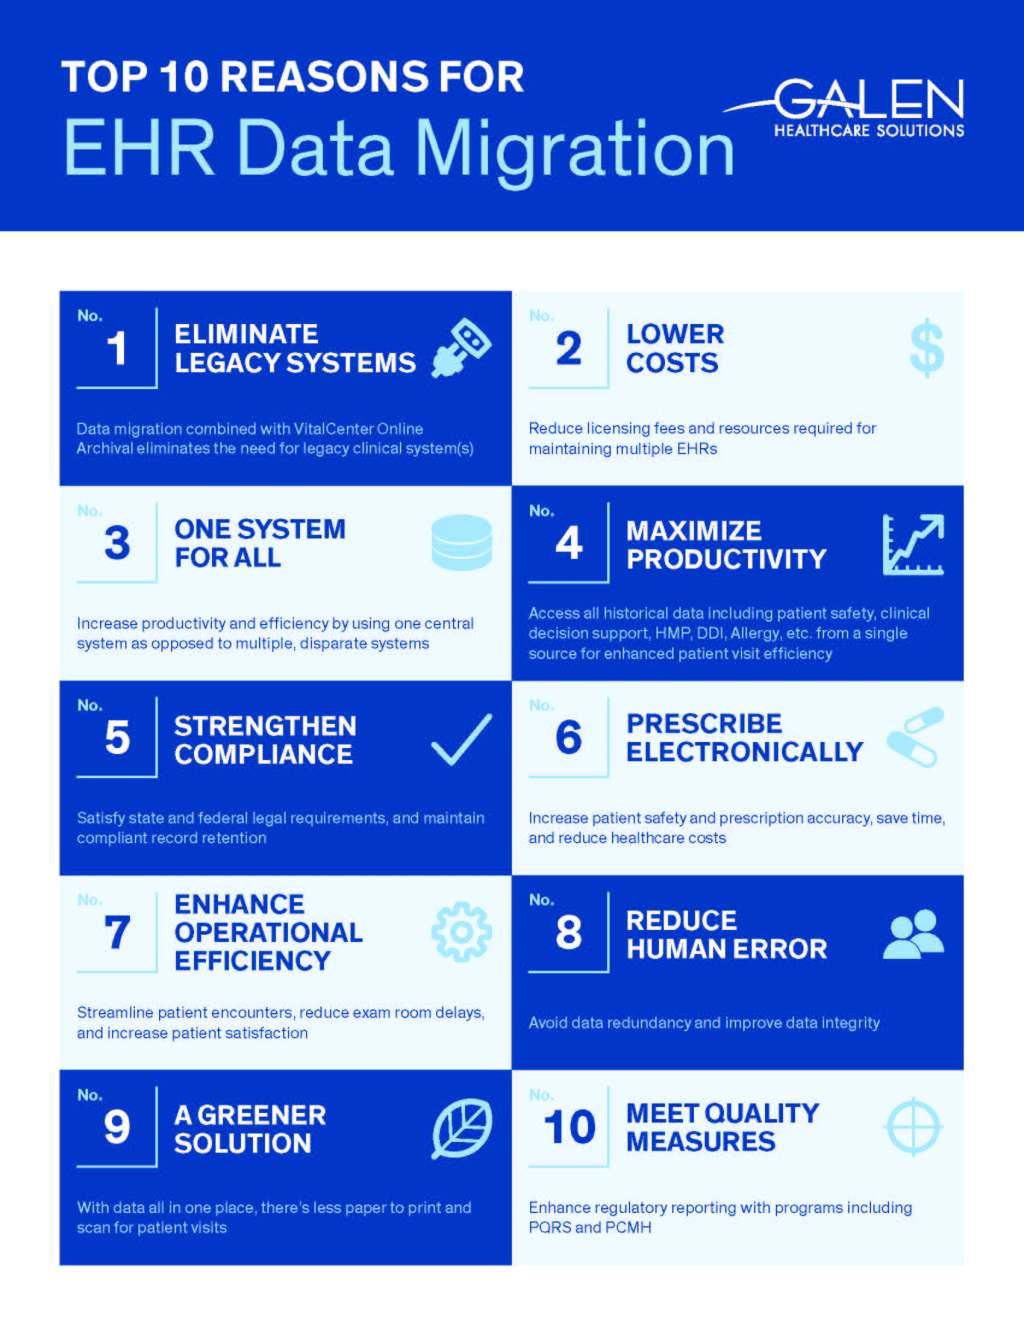 Galen's Top 10 Reasons to Migrate Your Data